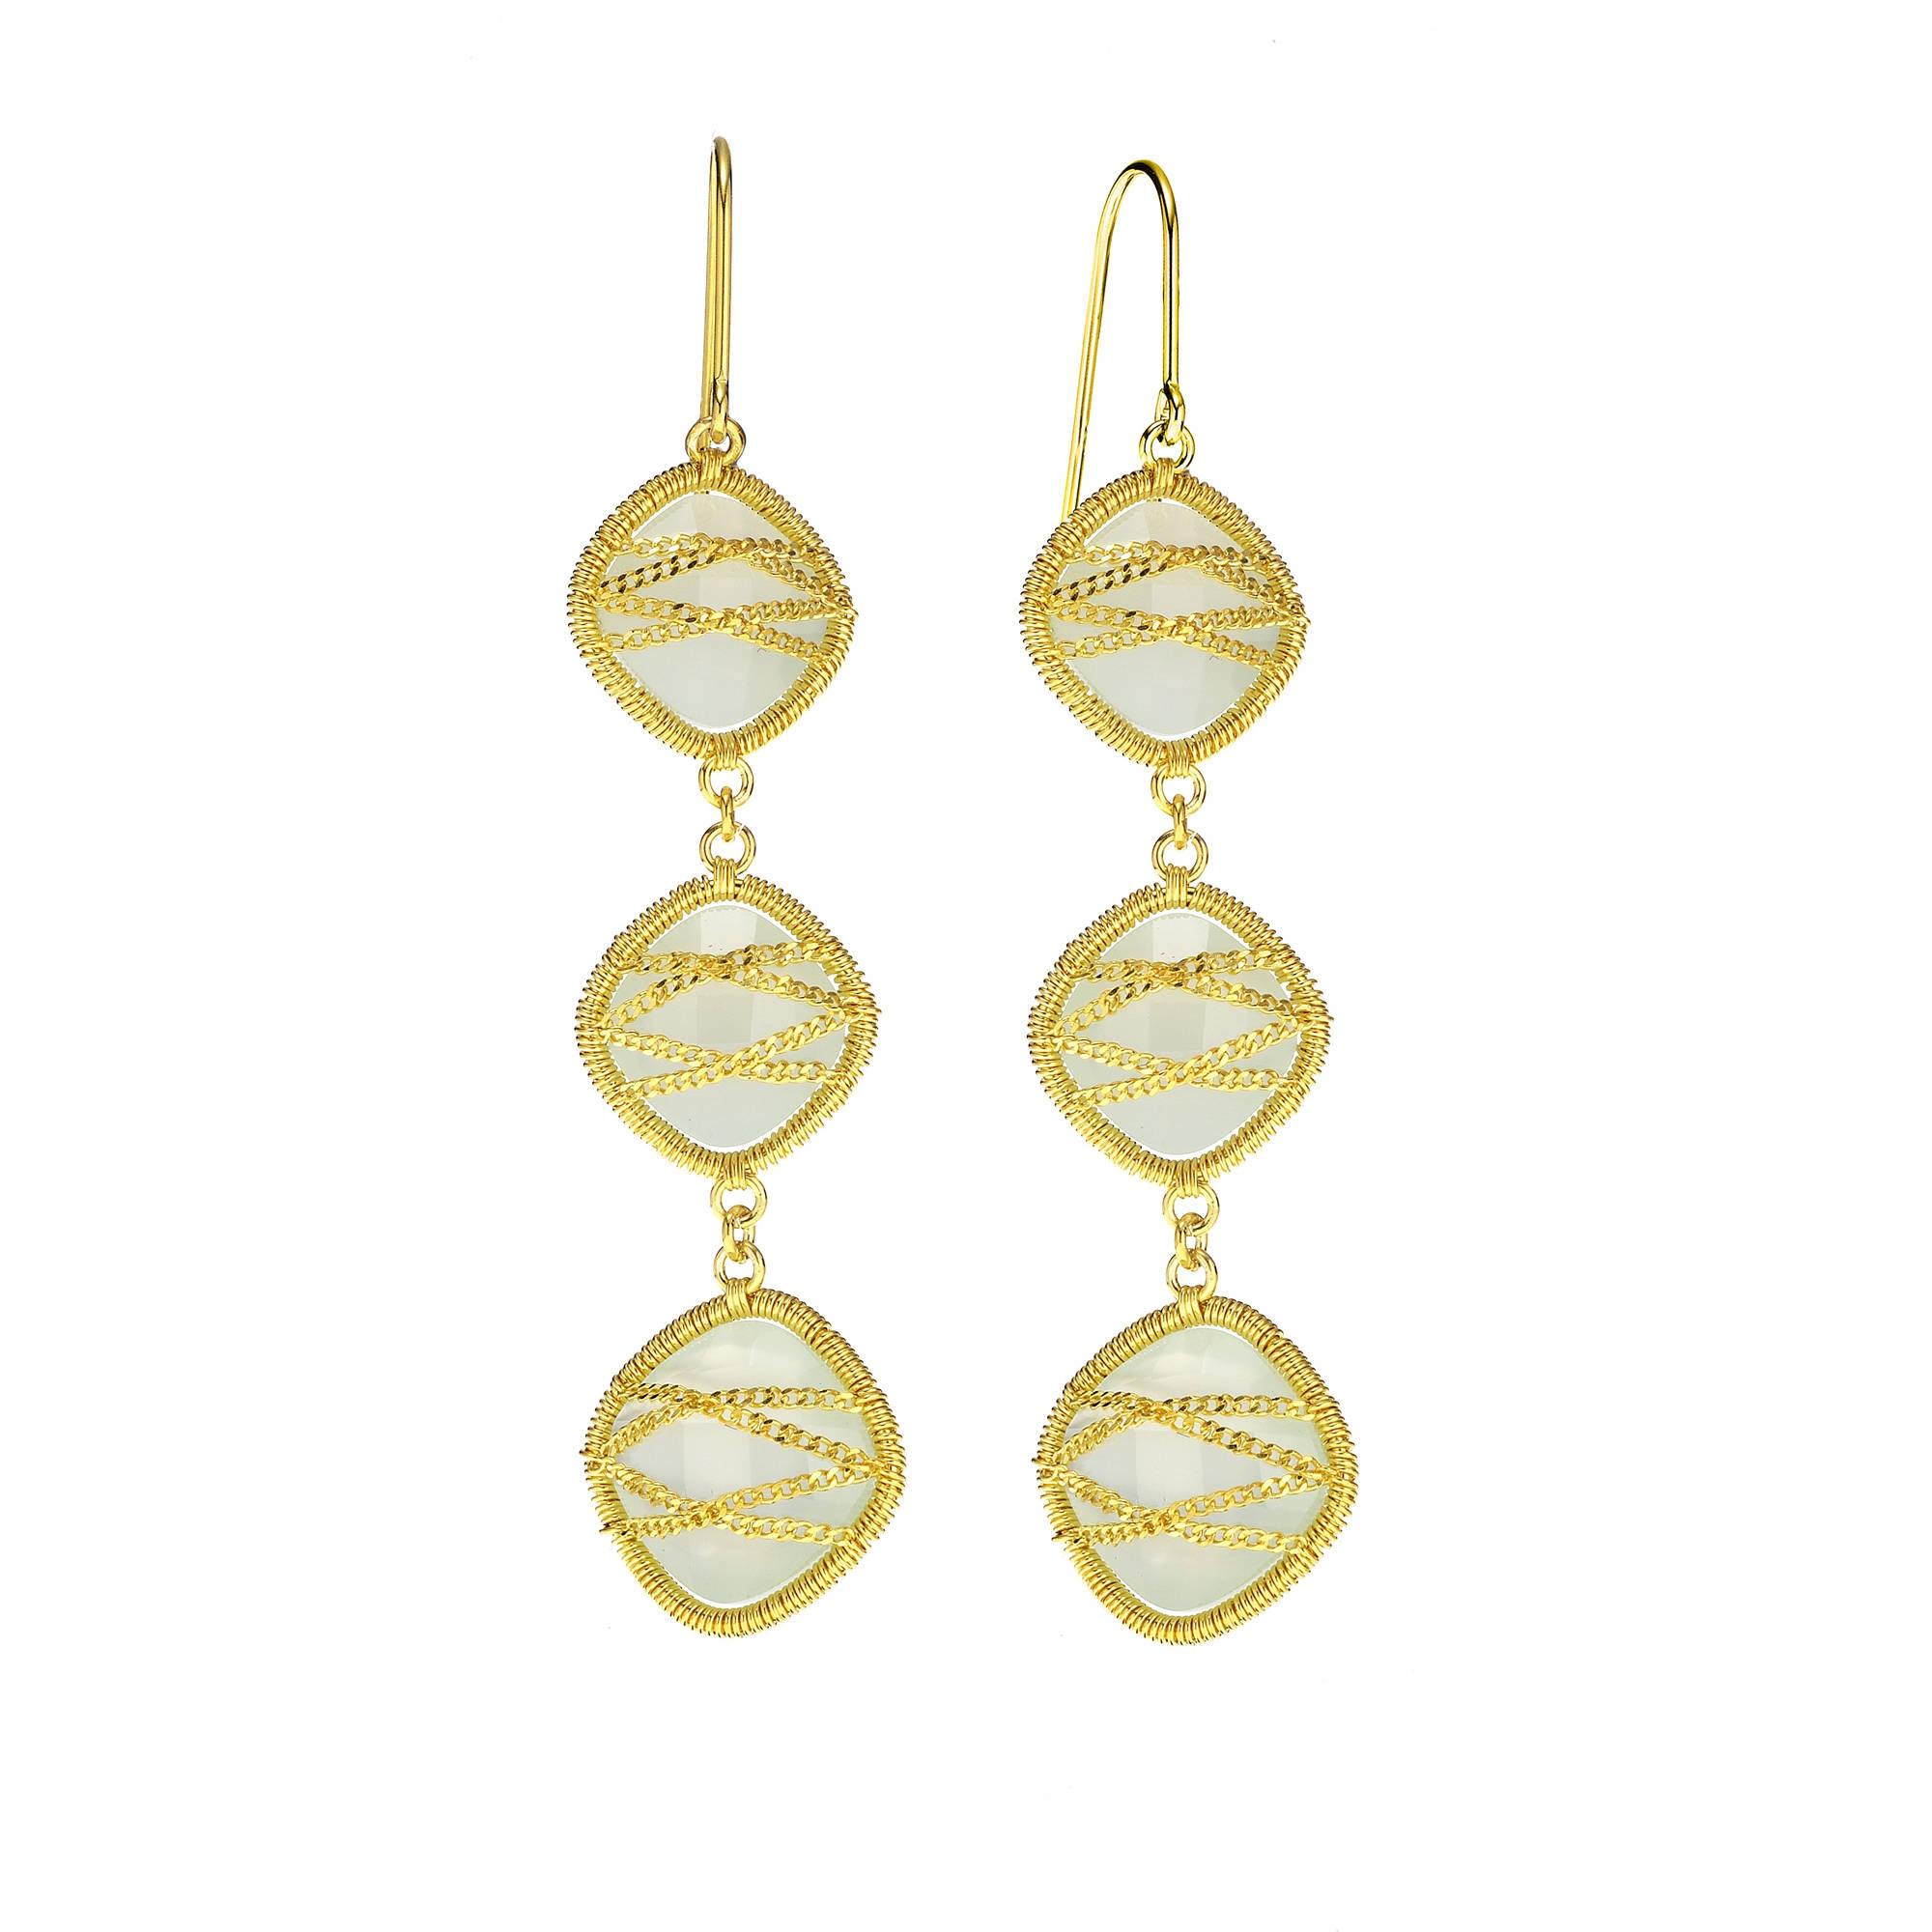 Image of 5th & Main 18kt Gold over Sterling Silver Hand-Wrapped Triple-Drop Squared Chalcedony Stone Earrings